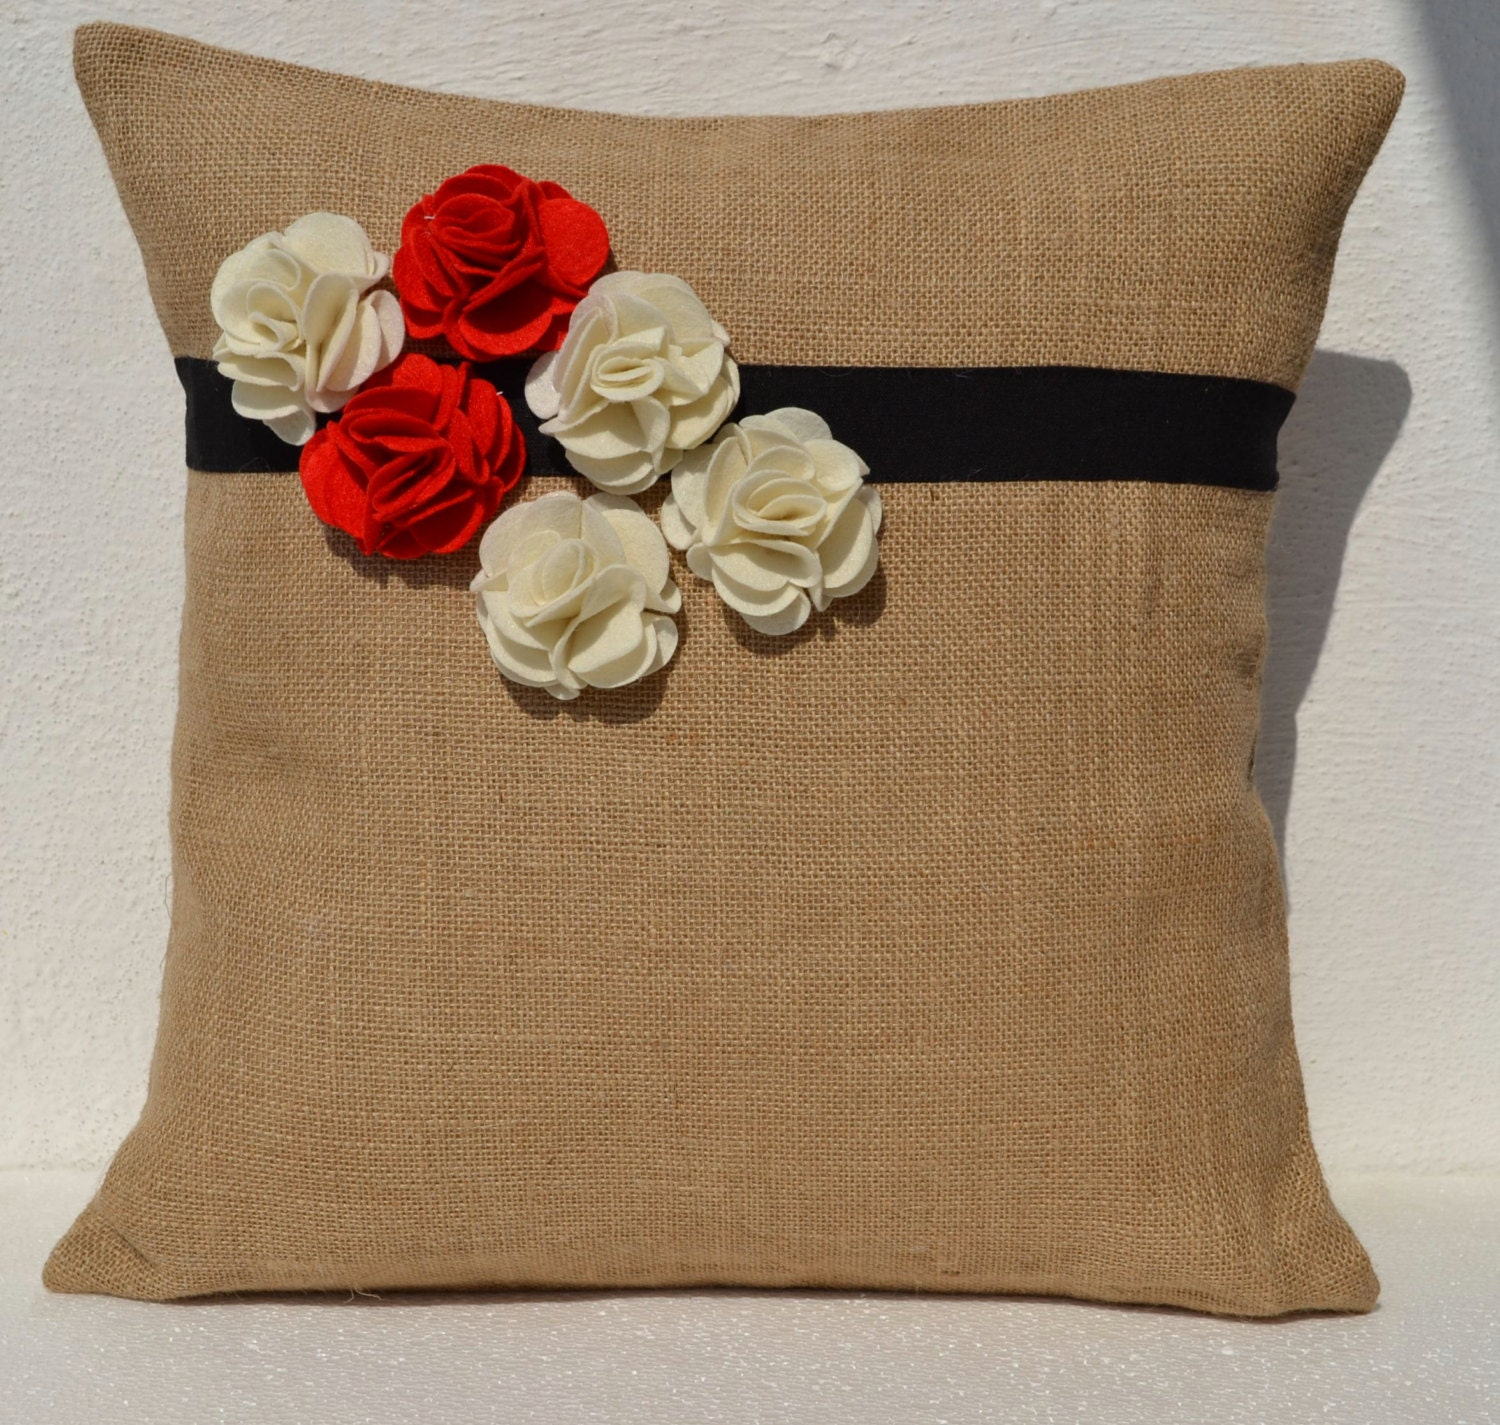 How To Make A Burlap Throw Pillow : Burlap Throw Pillows With Flowers Decorative Cushion Cover